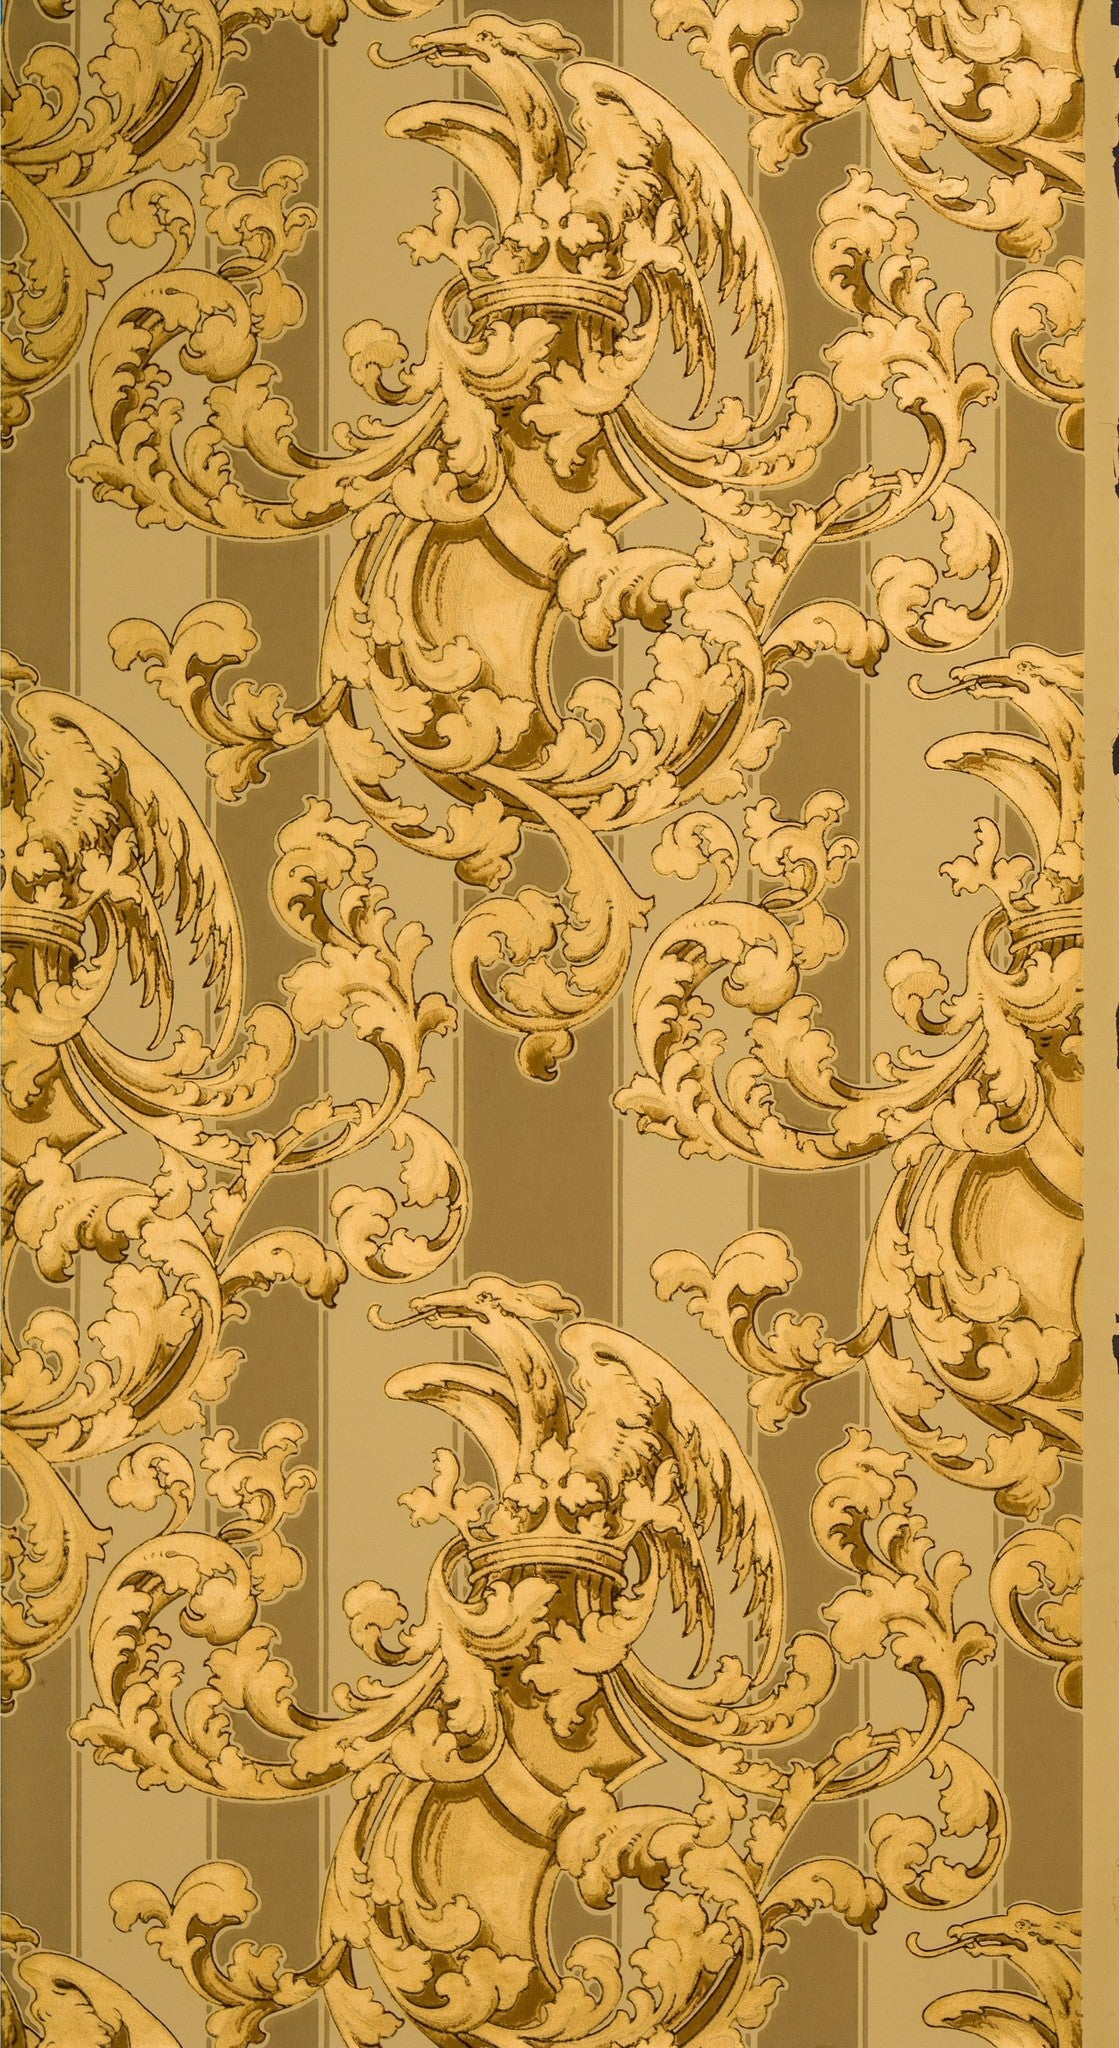 Shield, Crown and Griffin Amid Gilt Scrolls - Antique Wallpaper Remnant - SOLD OUT